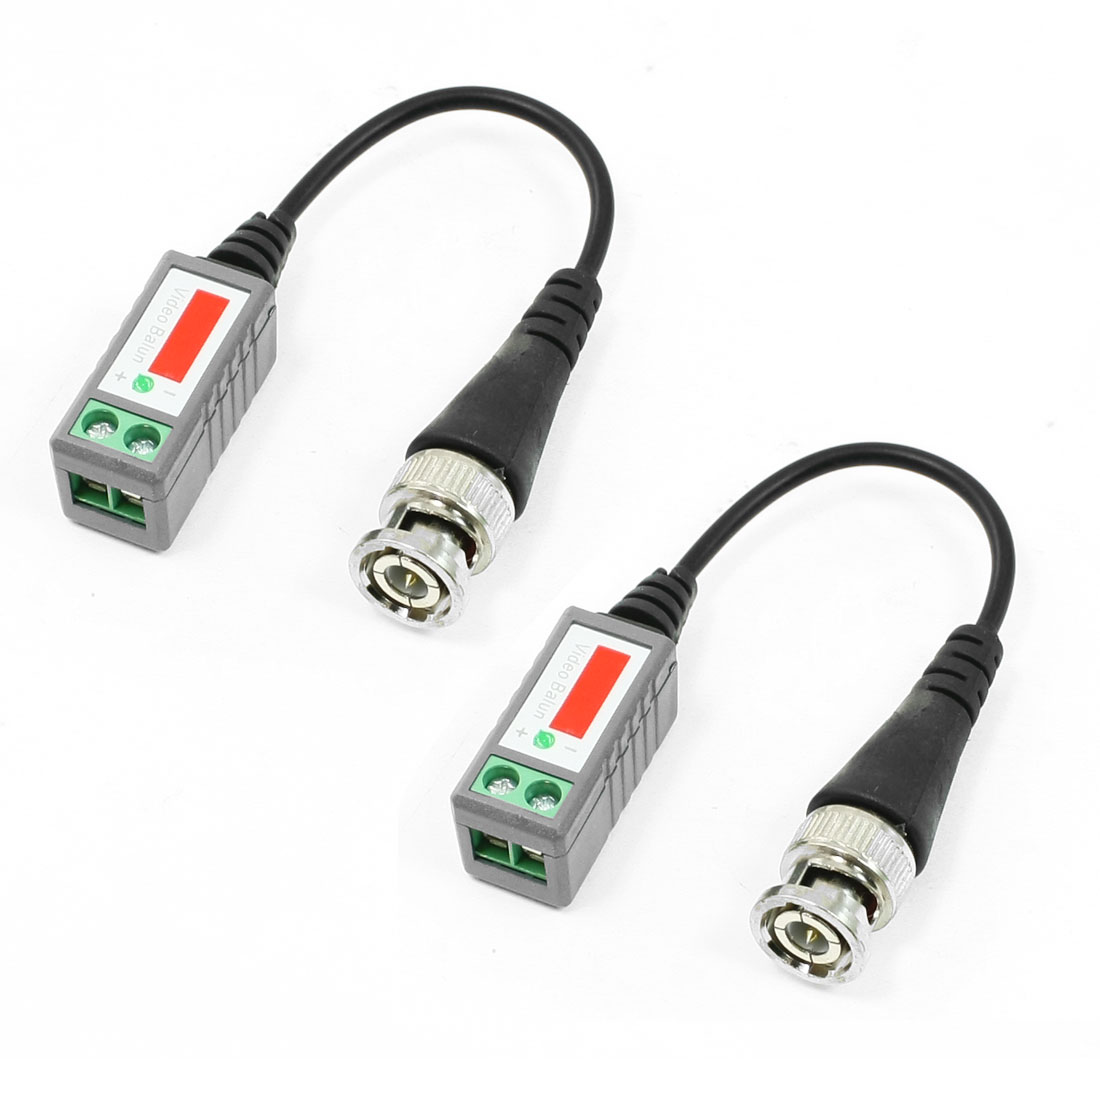 2 Pcs BNC Male Video Balun Transceiver Connector for CCTV Security Camera